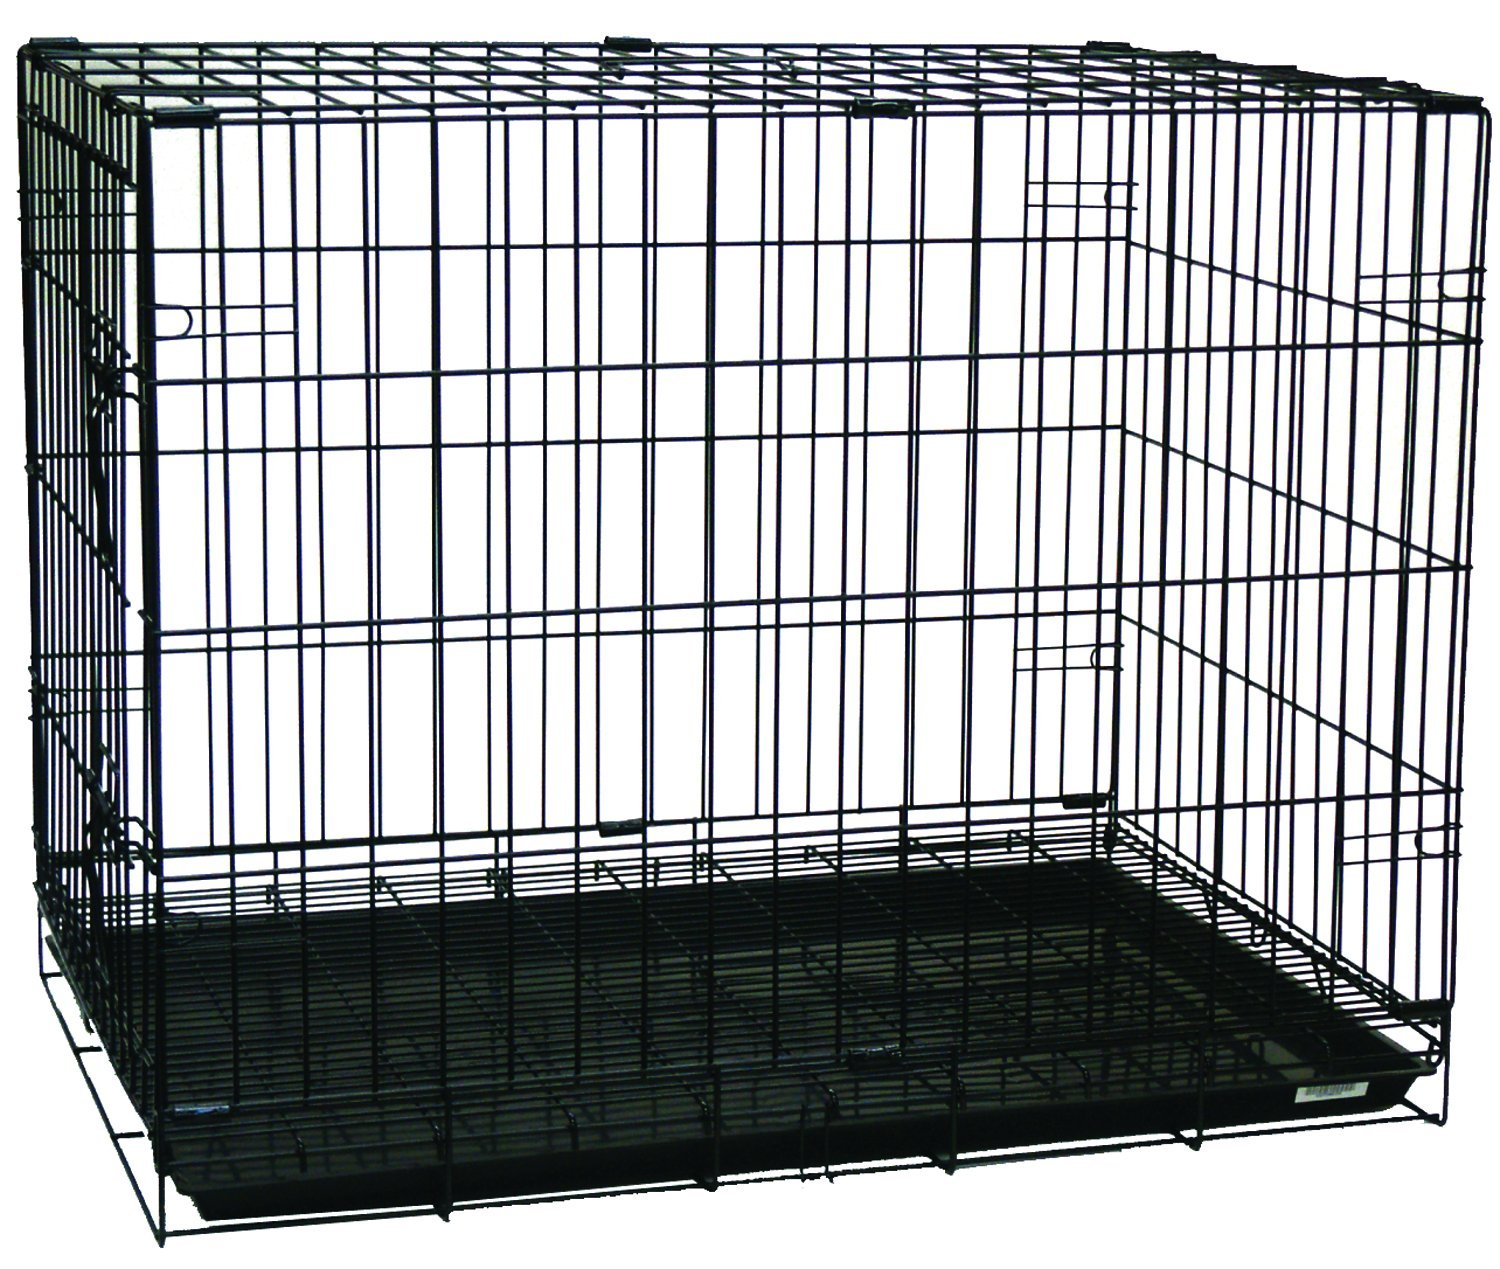 YML Double Door Dog Kennel Cage with Plastic Tray No Bottom Wire, 48-Inch, Black by YML (Image #1)